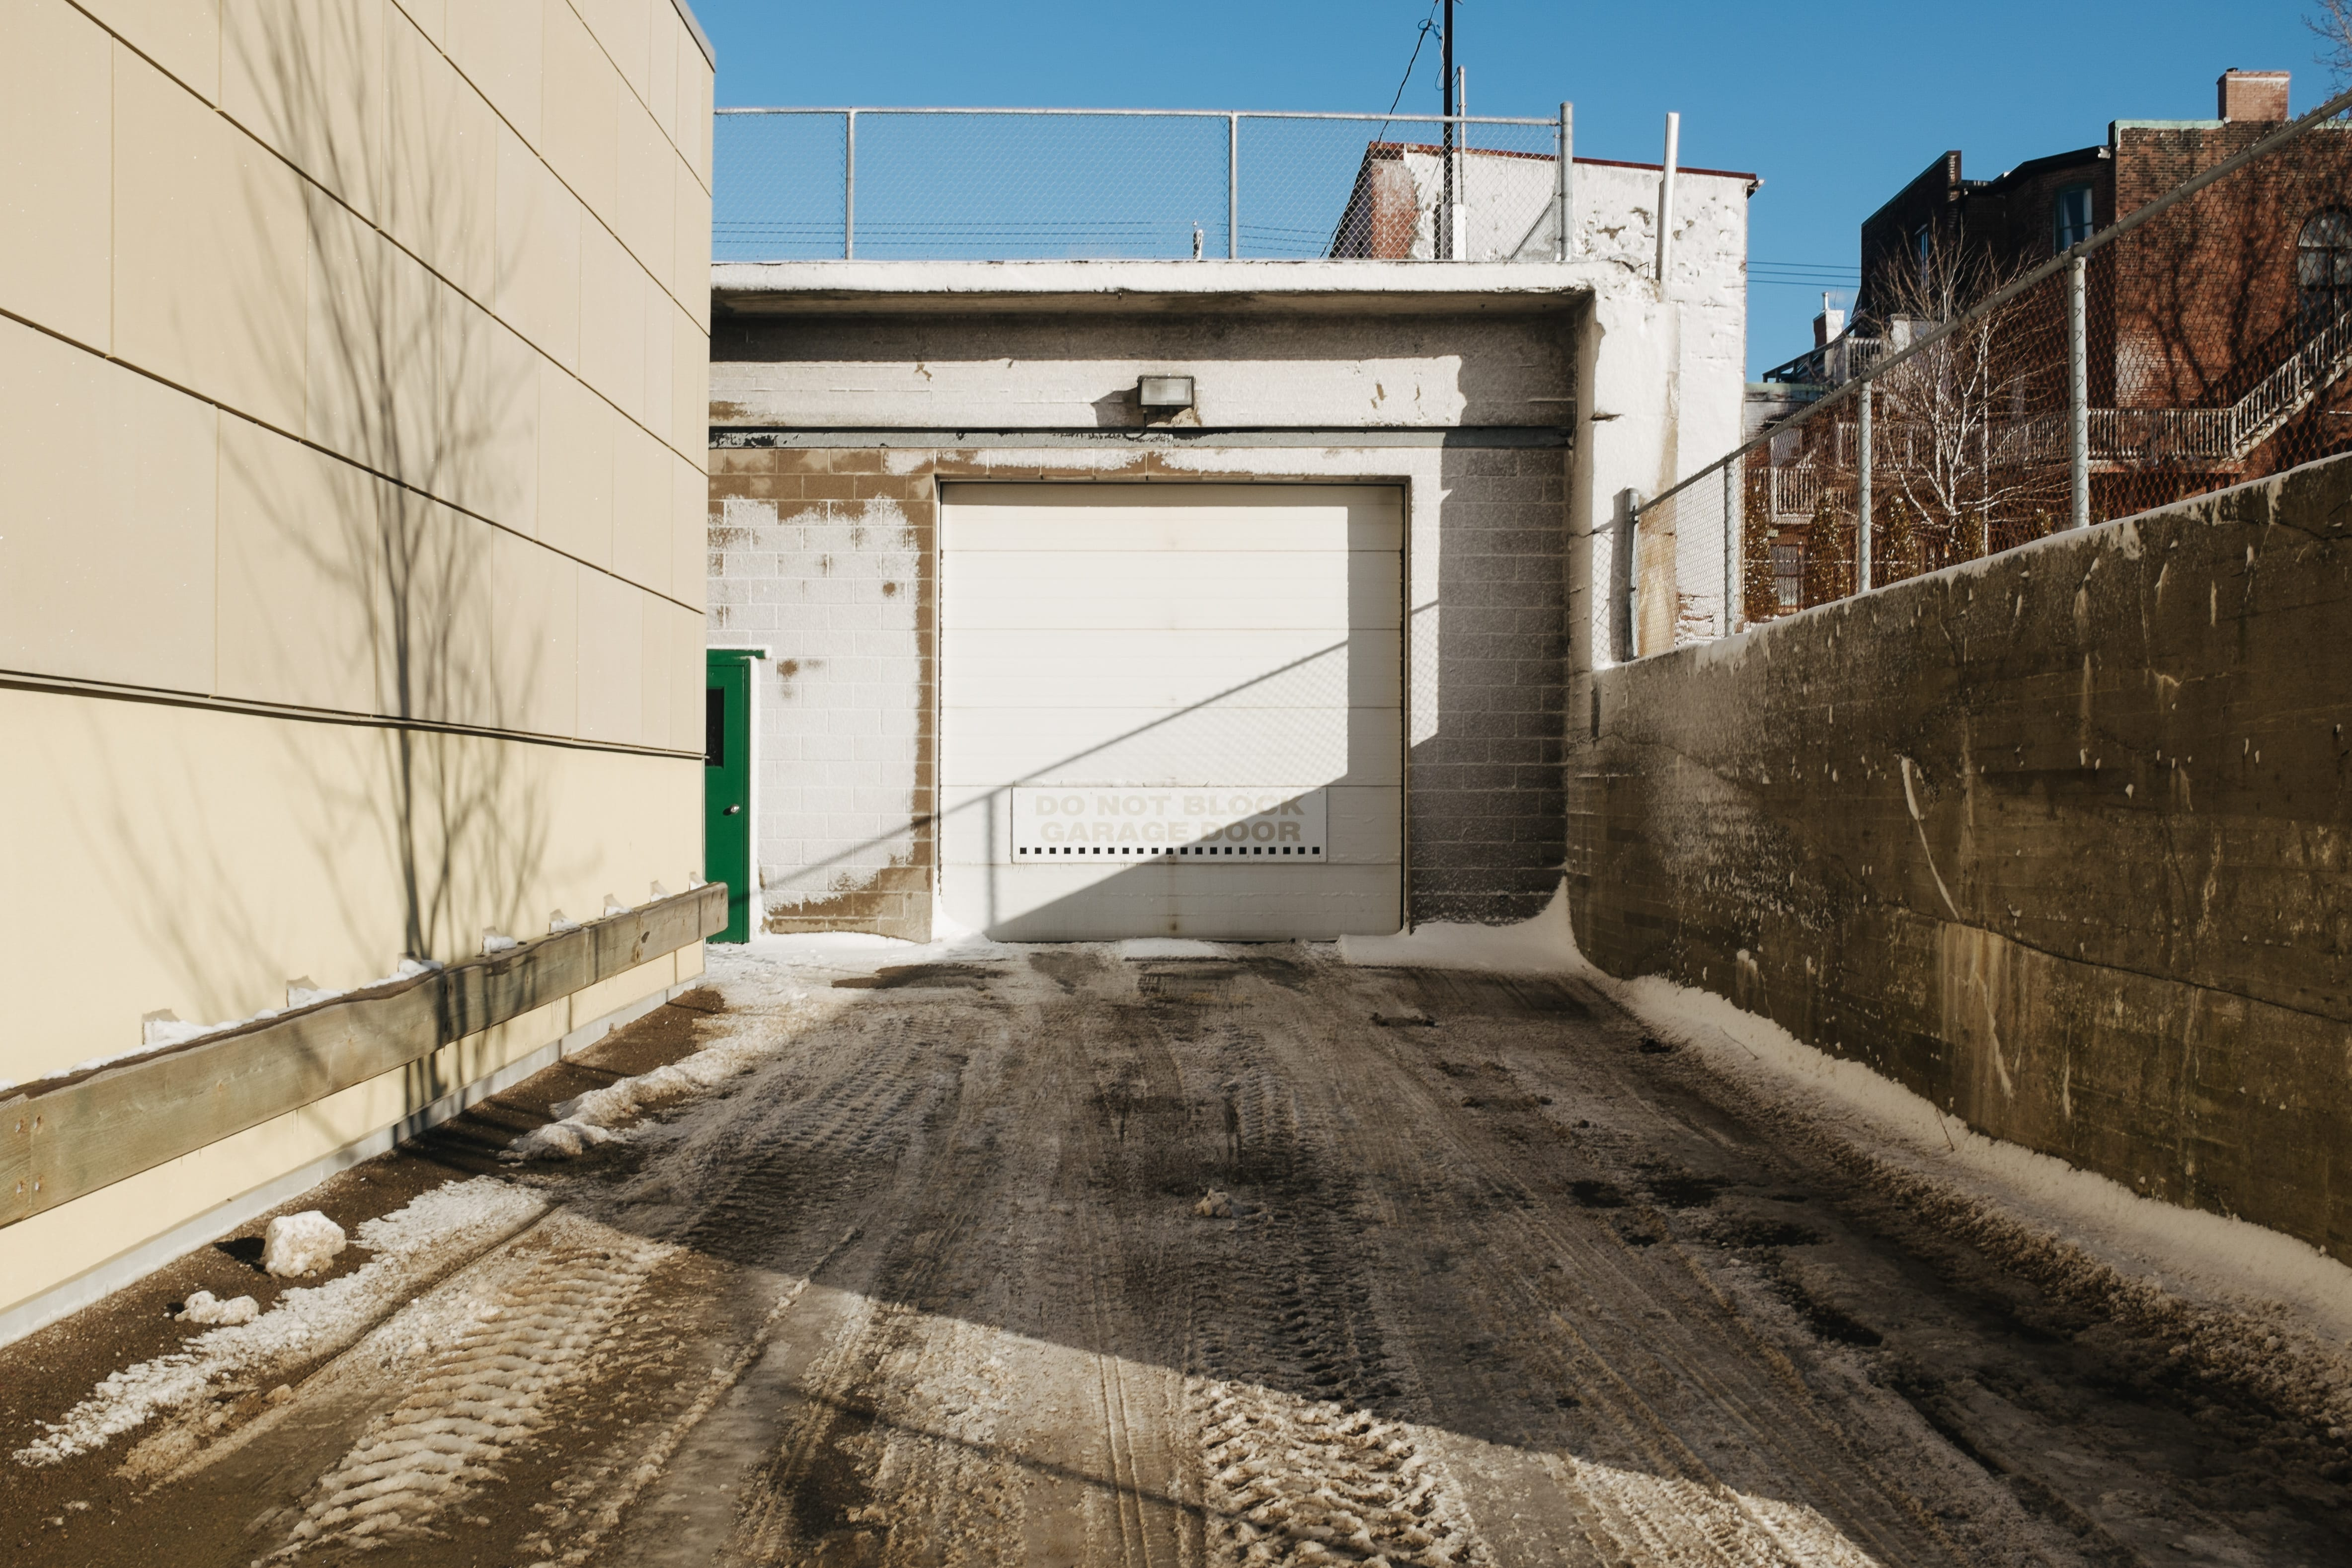 A photograph depicting Imperial Theatre Loading Dock